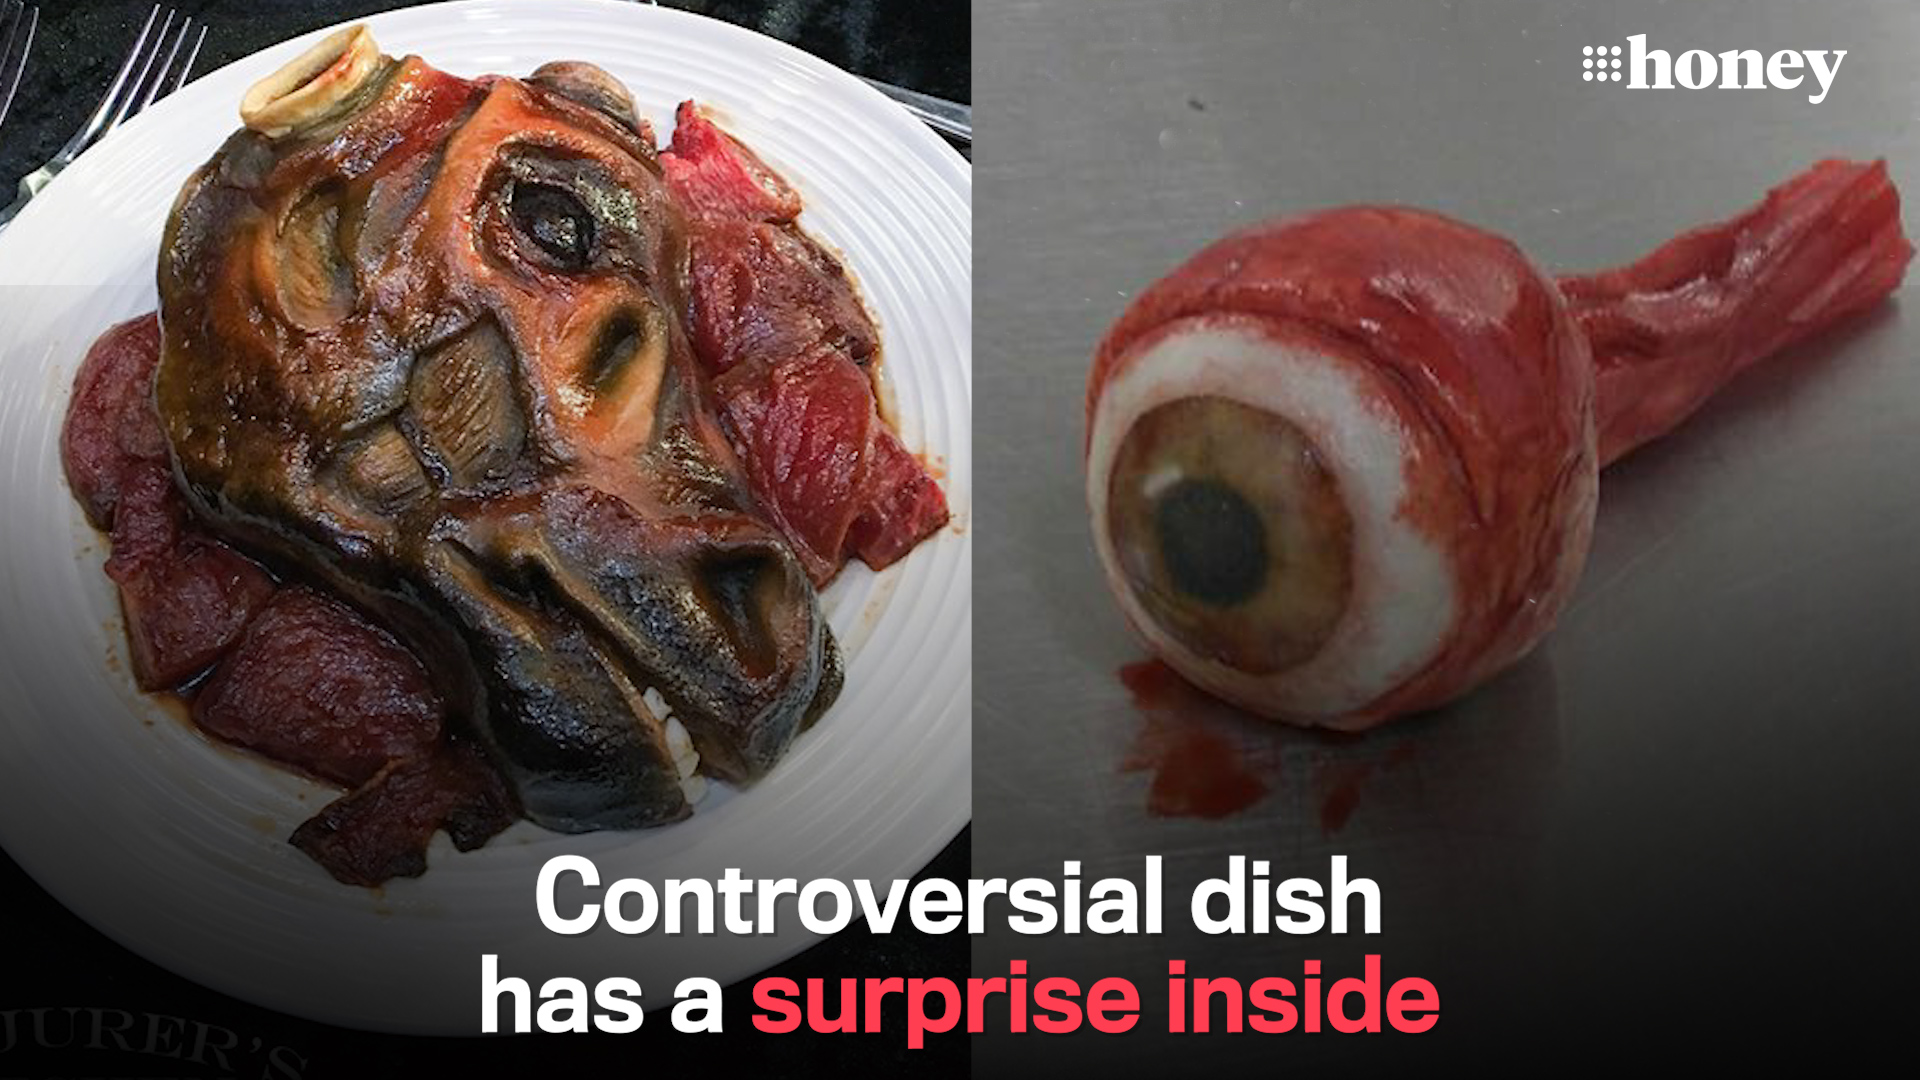 Sickening dishes have a surprisingly sweet centre